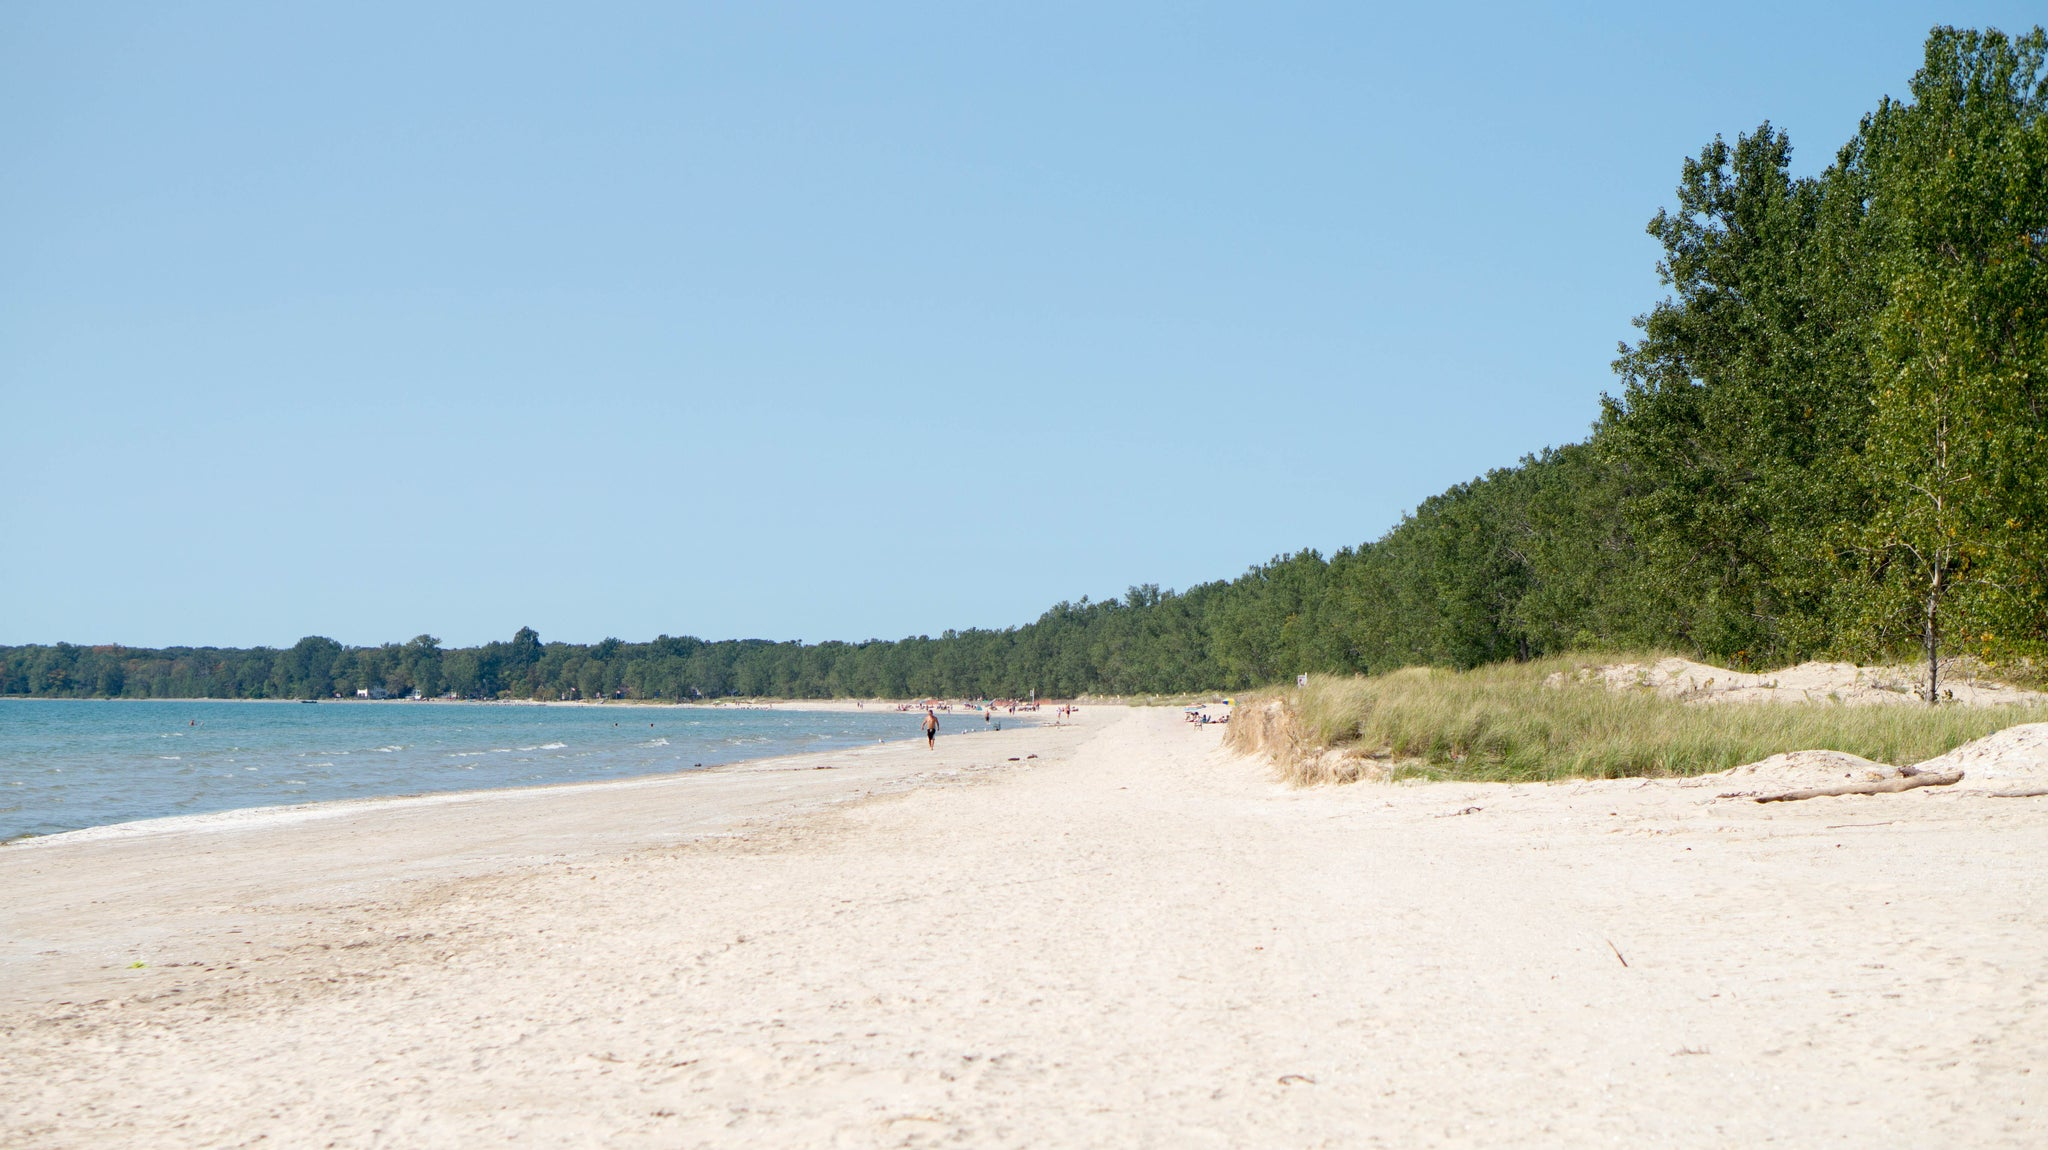 Sandbanks Beach and Provincial Park in Prince Edward County